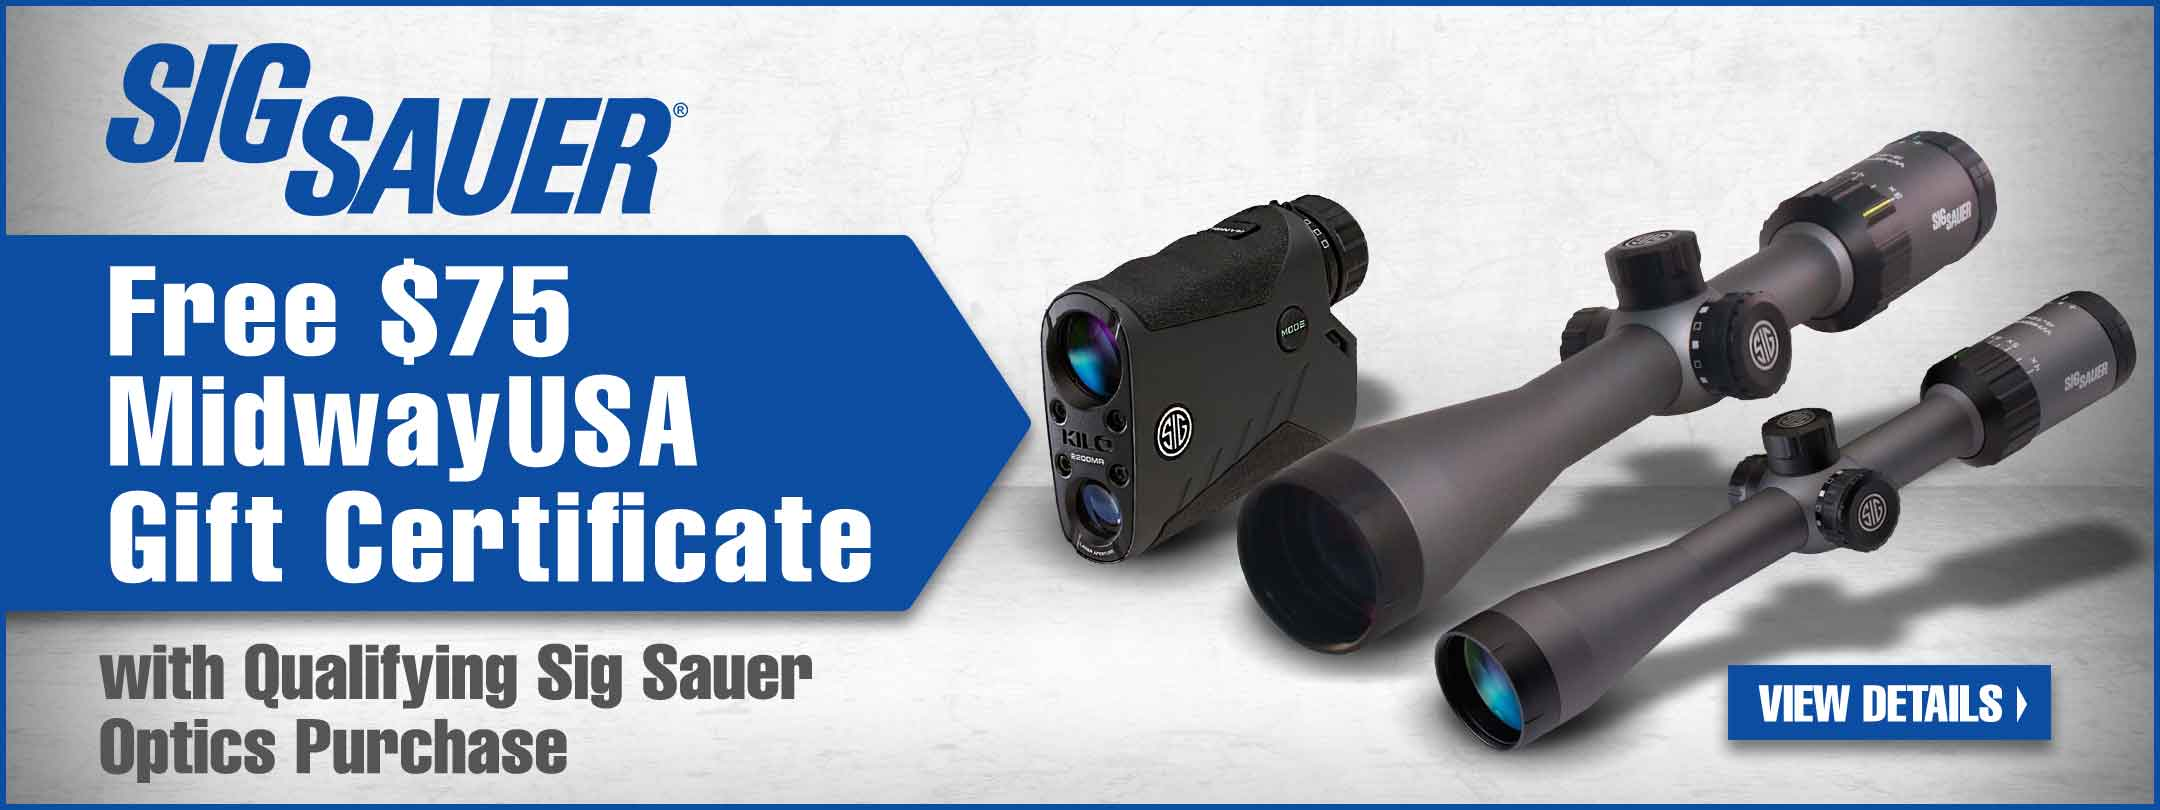 Free $75 MidwayUSA Gift Certificate with Qualifying Sig Sauer Optics Purchase